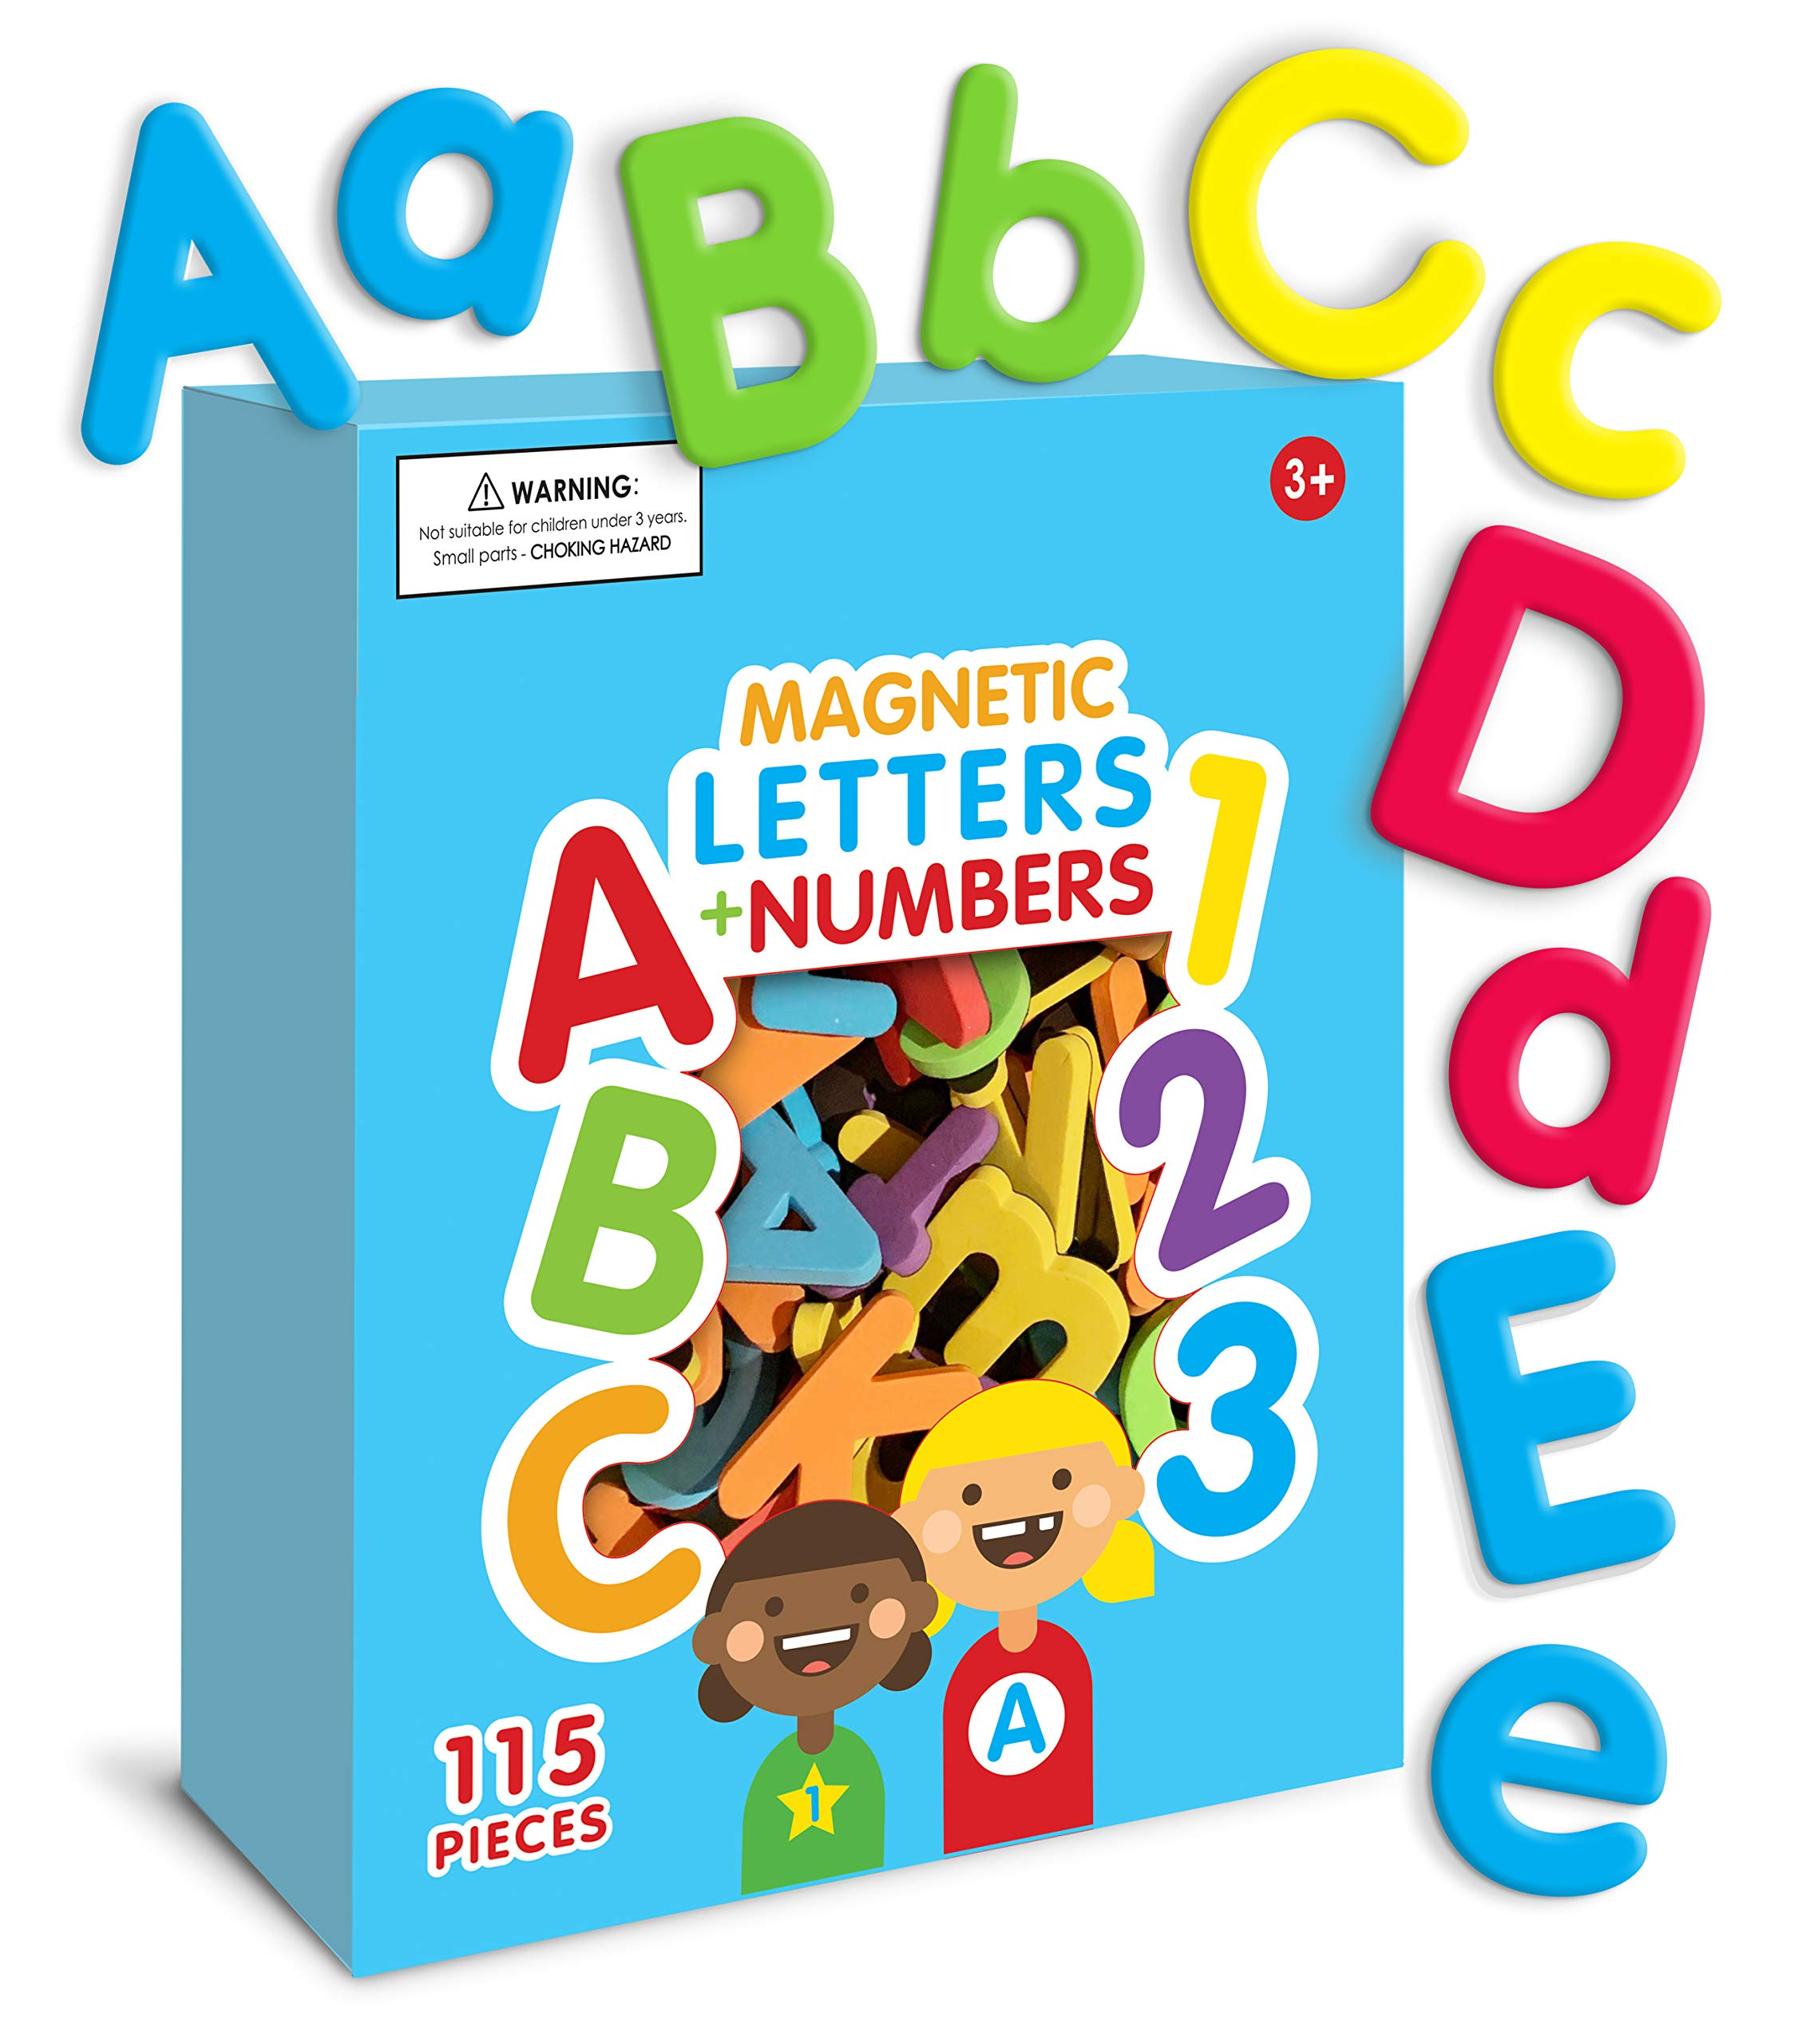 Curious Columbus Magnetic Letters and Numbers. 115 Colorful ABC, 123 Foam Alphabet Magnets Educational Toy for Preschool Pre-K Spelling, Counting by Curious Columbus